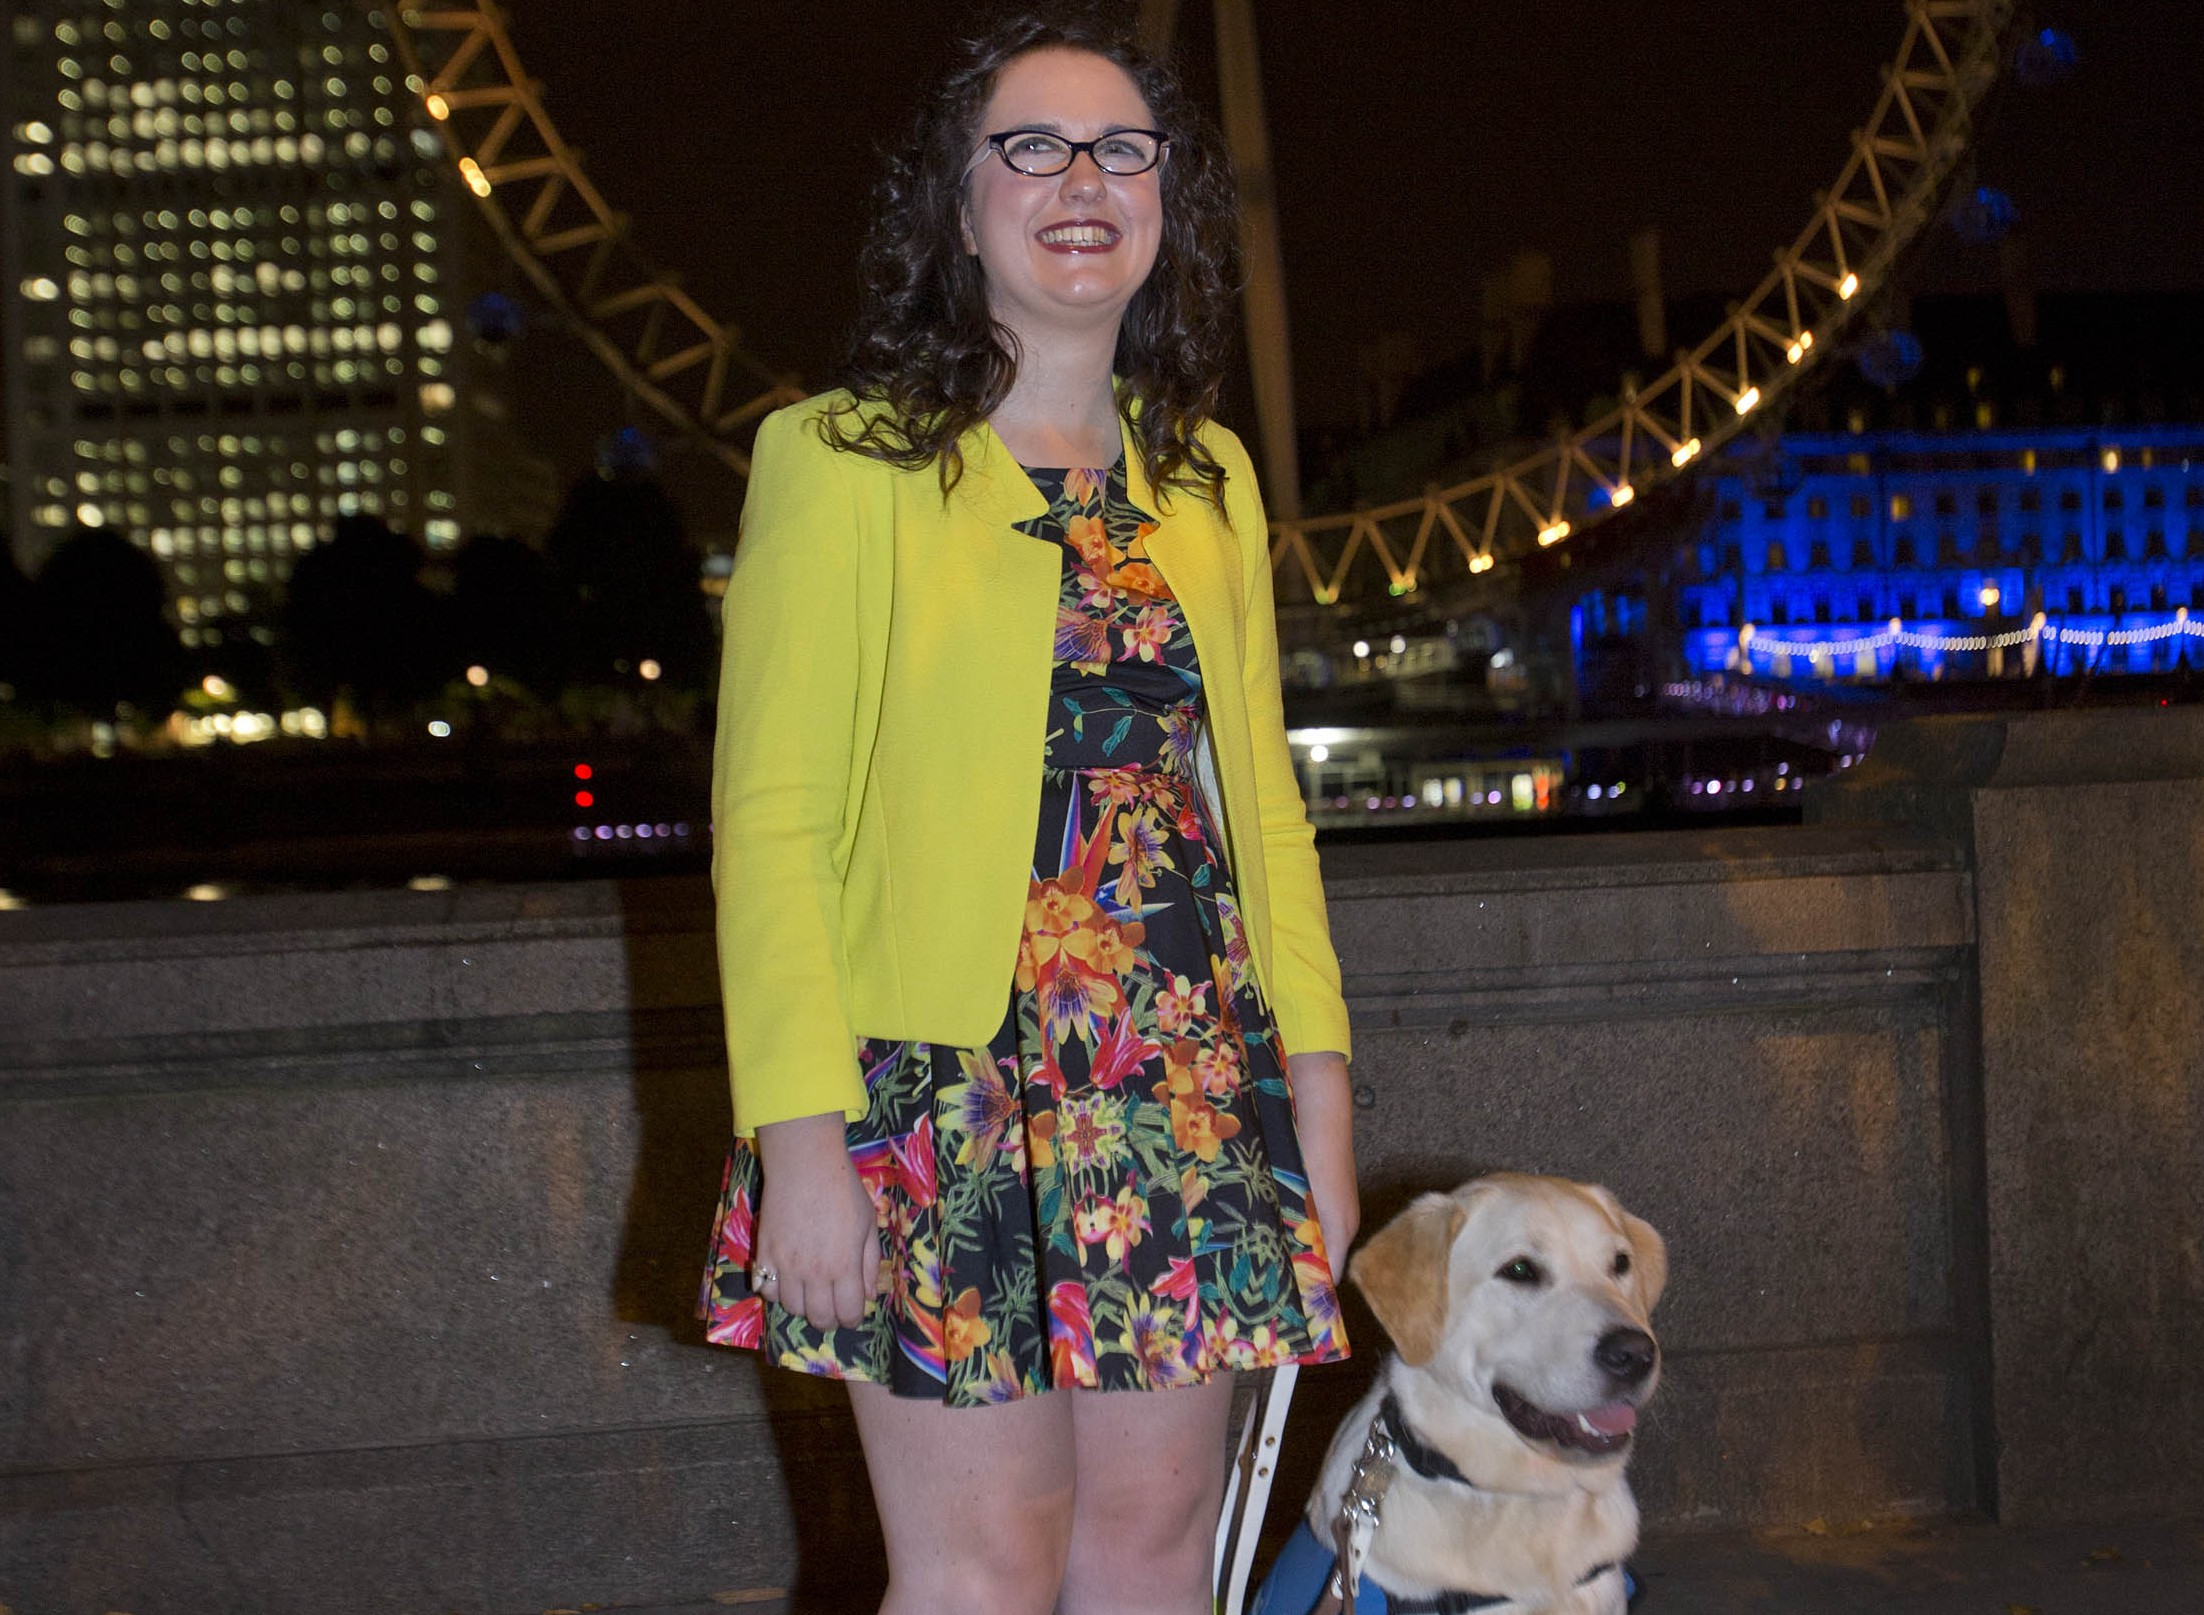 Voice winner Andrea launches guide dog campaign